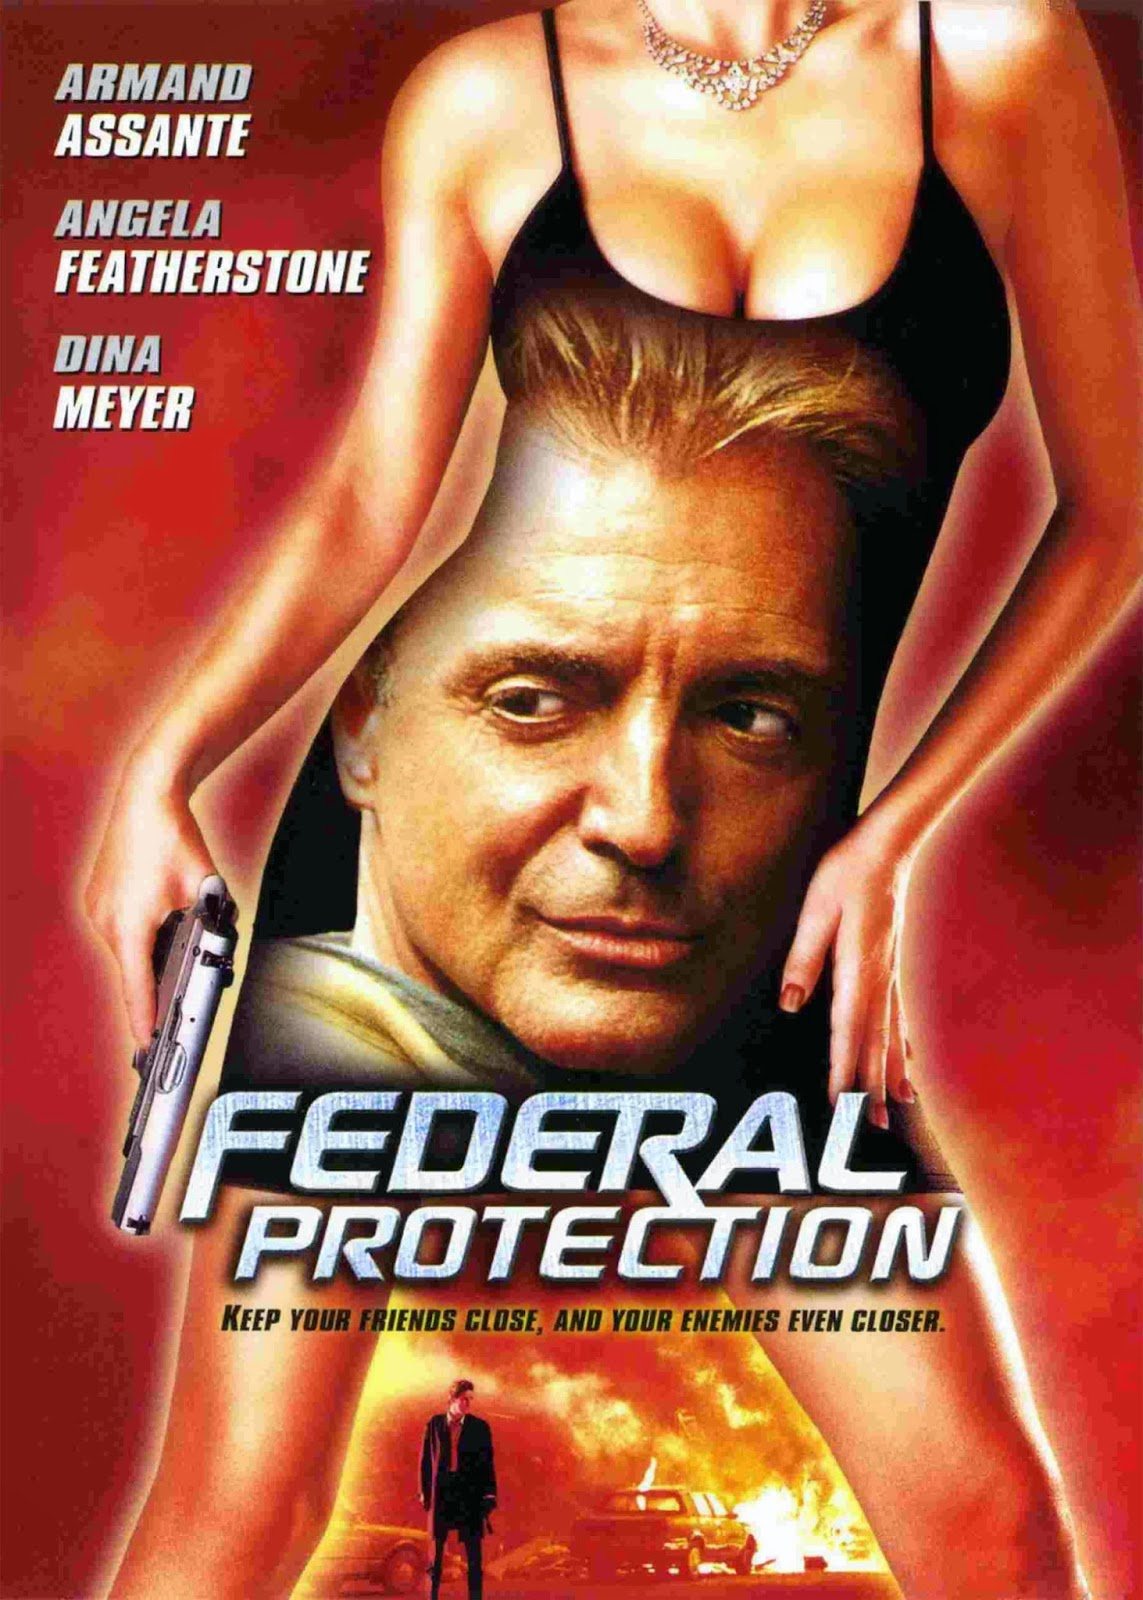 Federal Protection (2002)